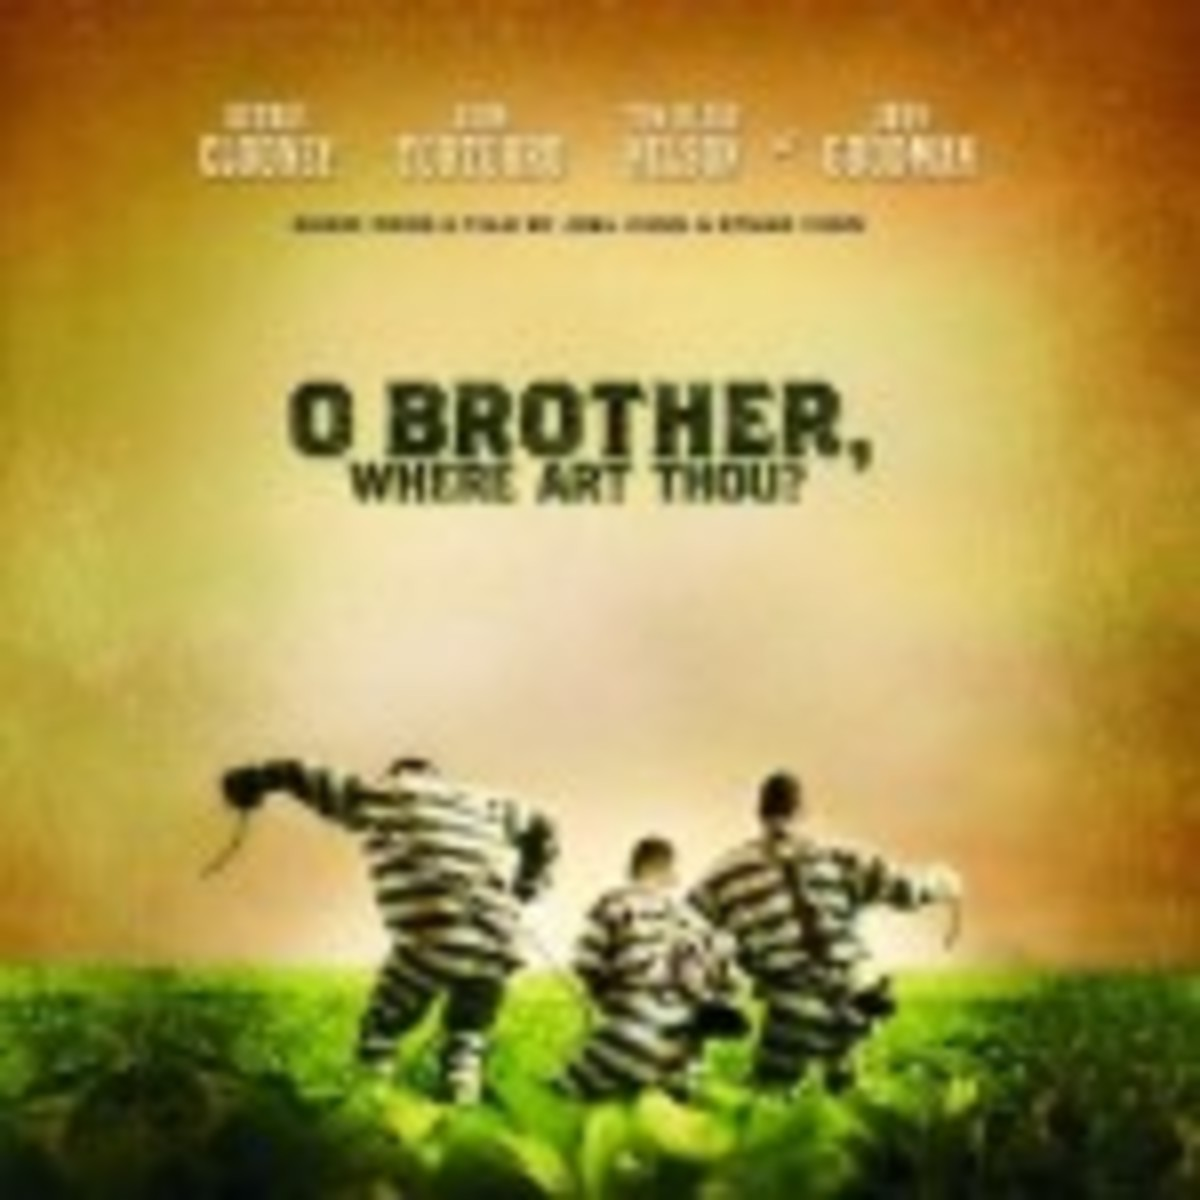 O Brother soundtrack cover